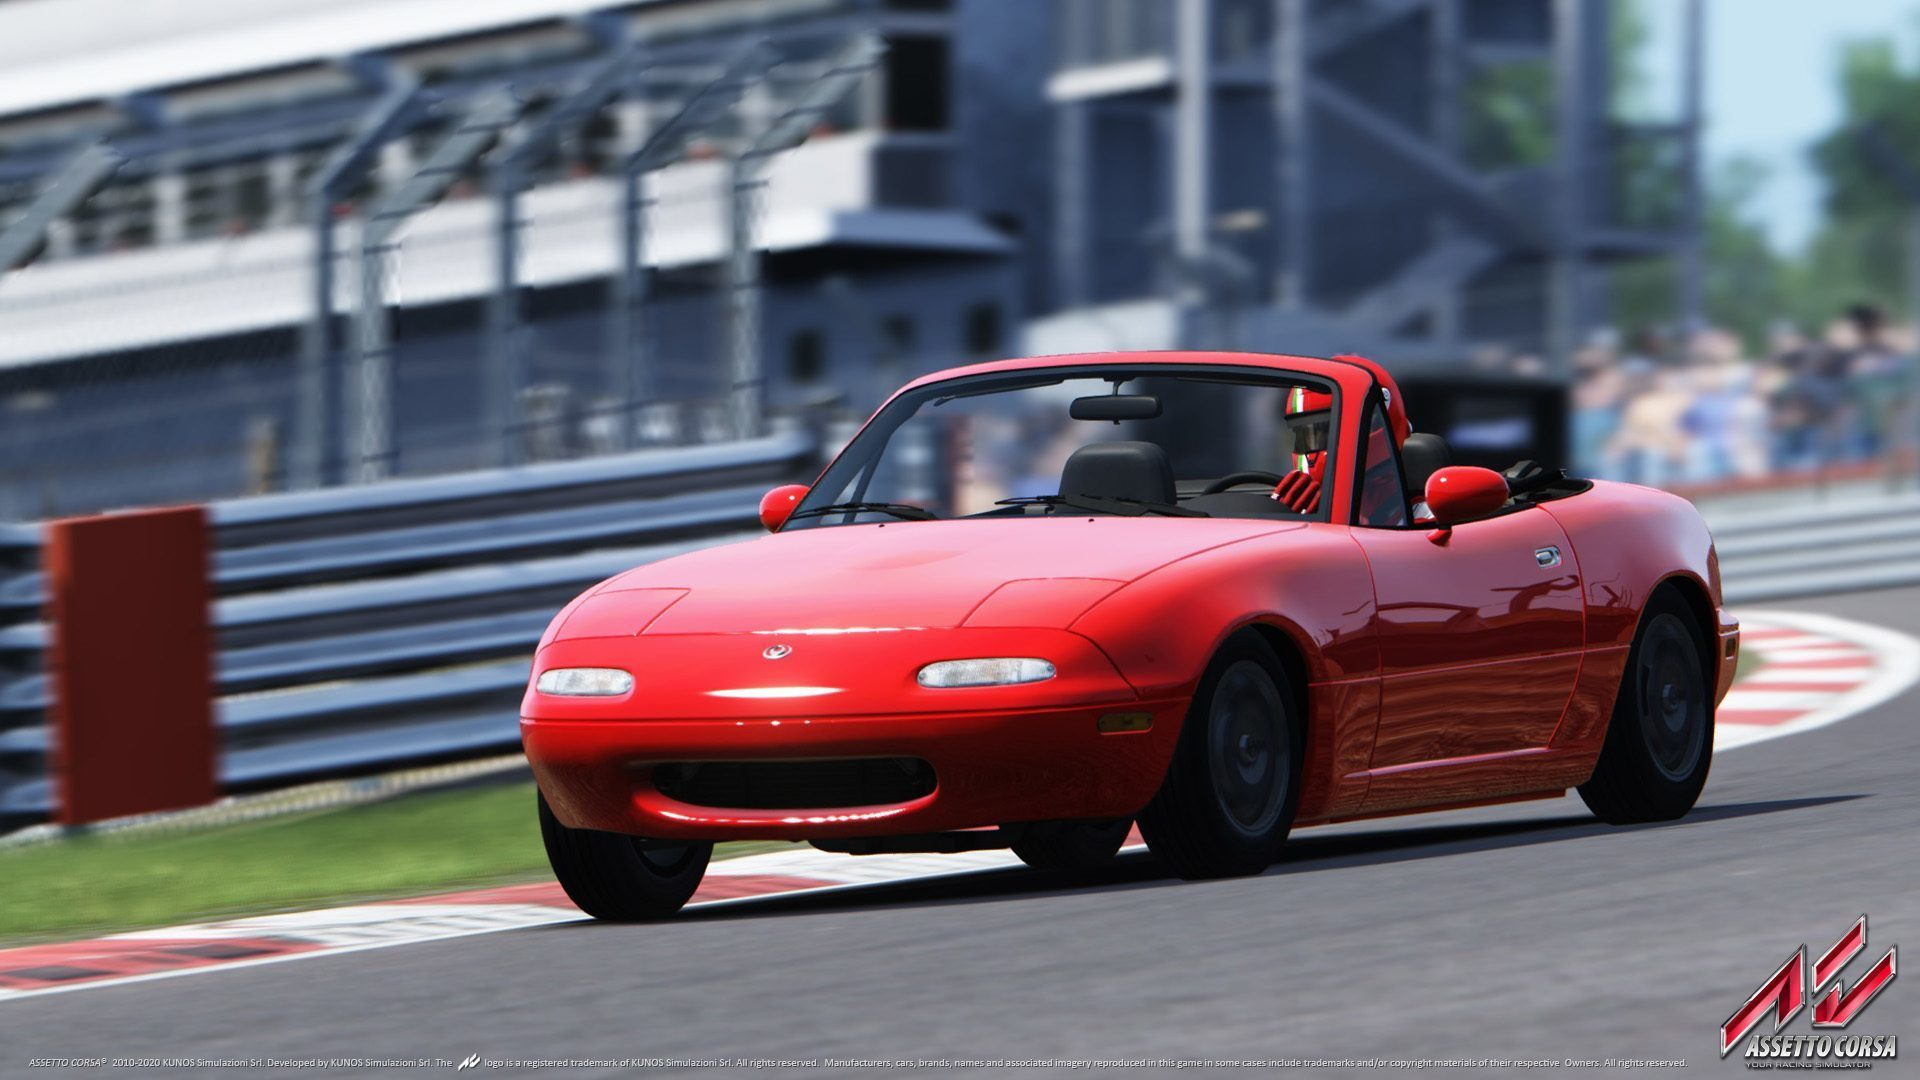 assetto corsa update brings the mazda 787b mx 5 na. Black Bedroom Furniture Sets. Home Design Ideas